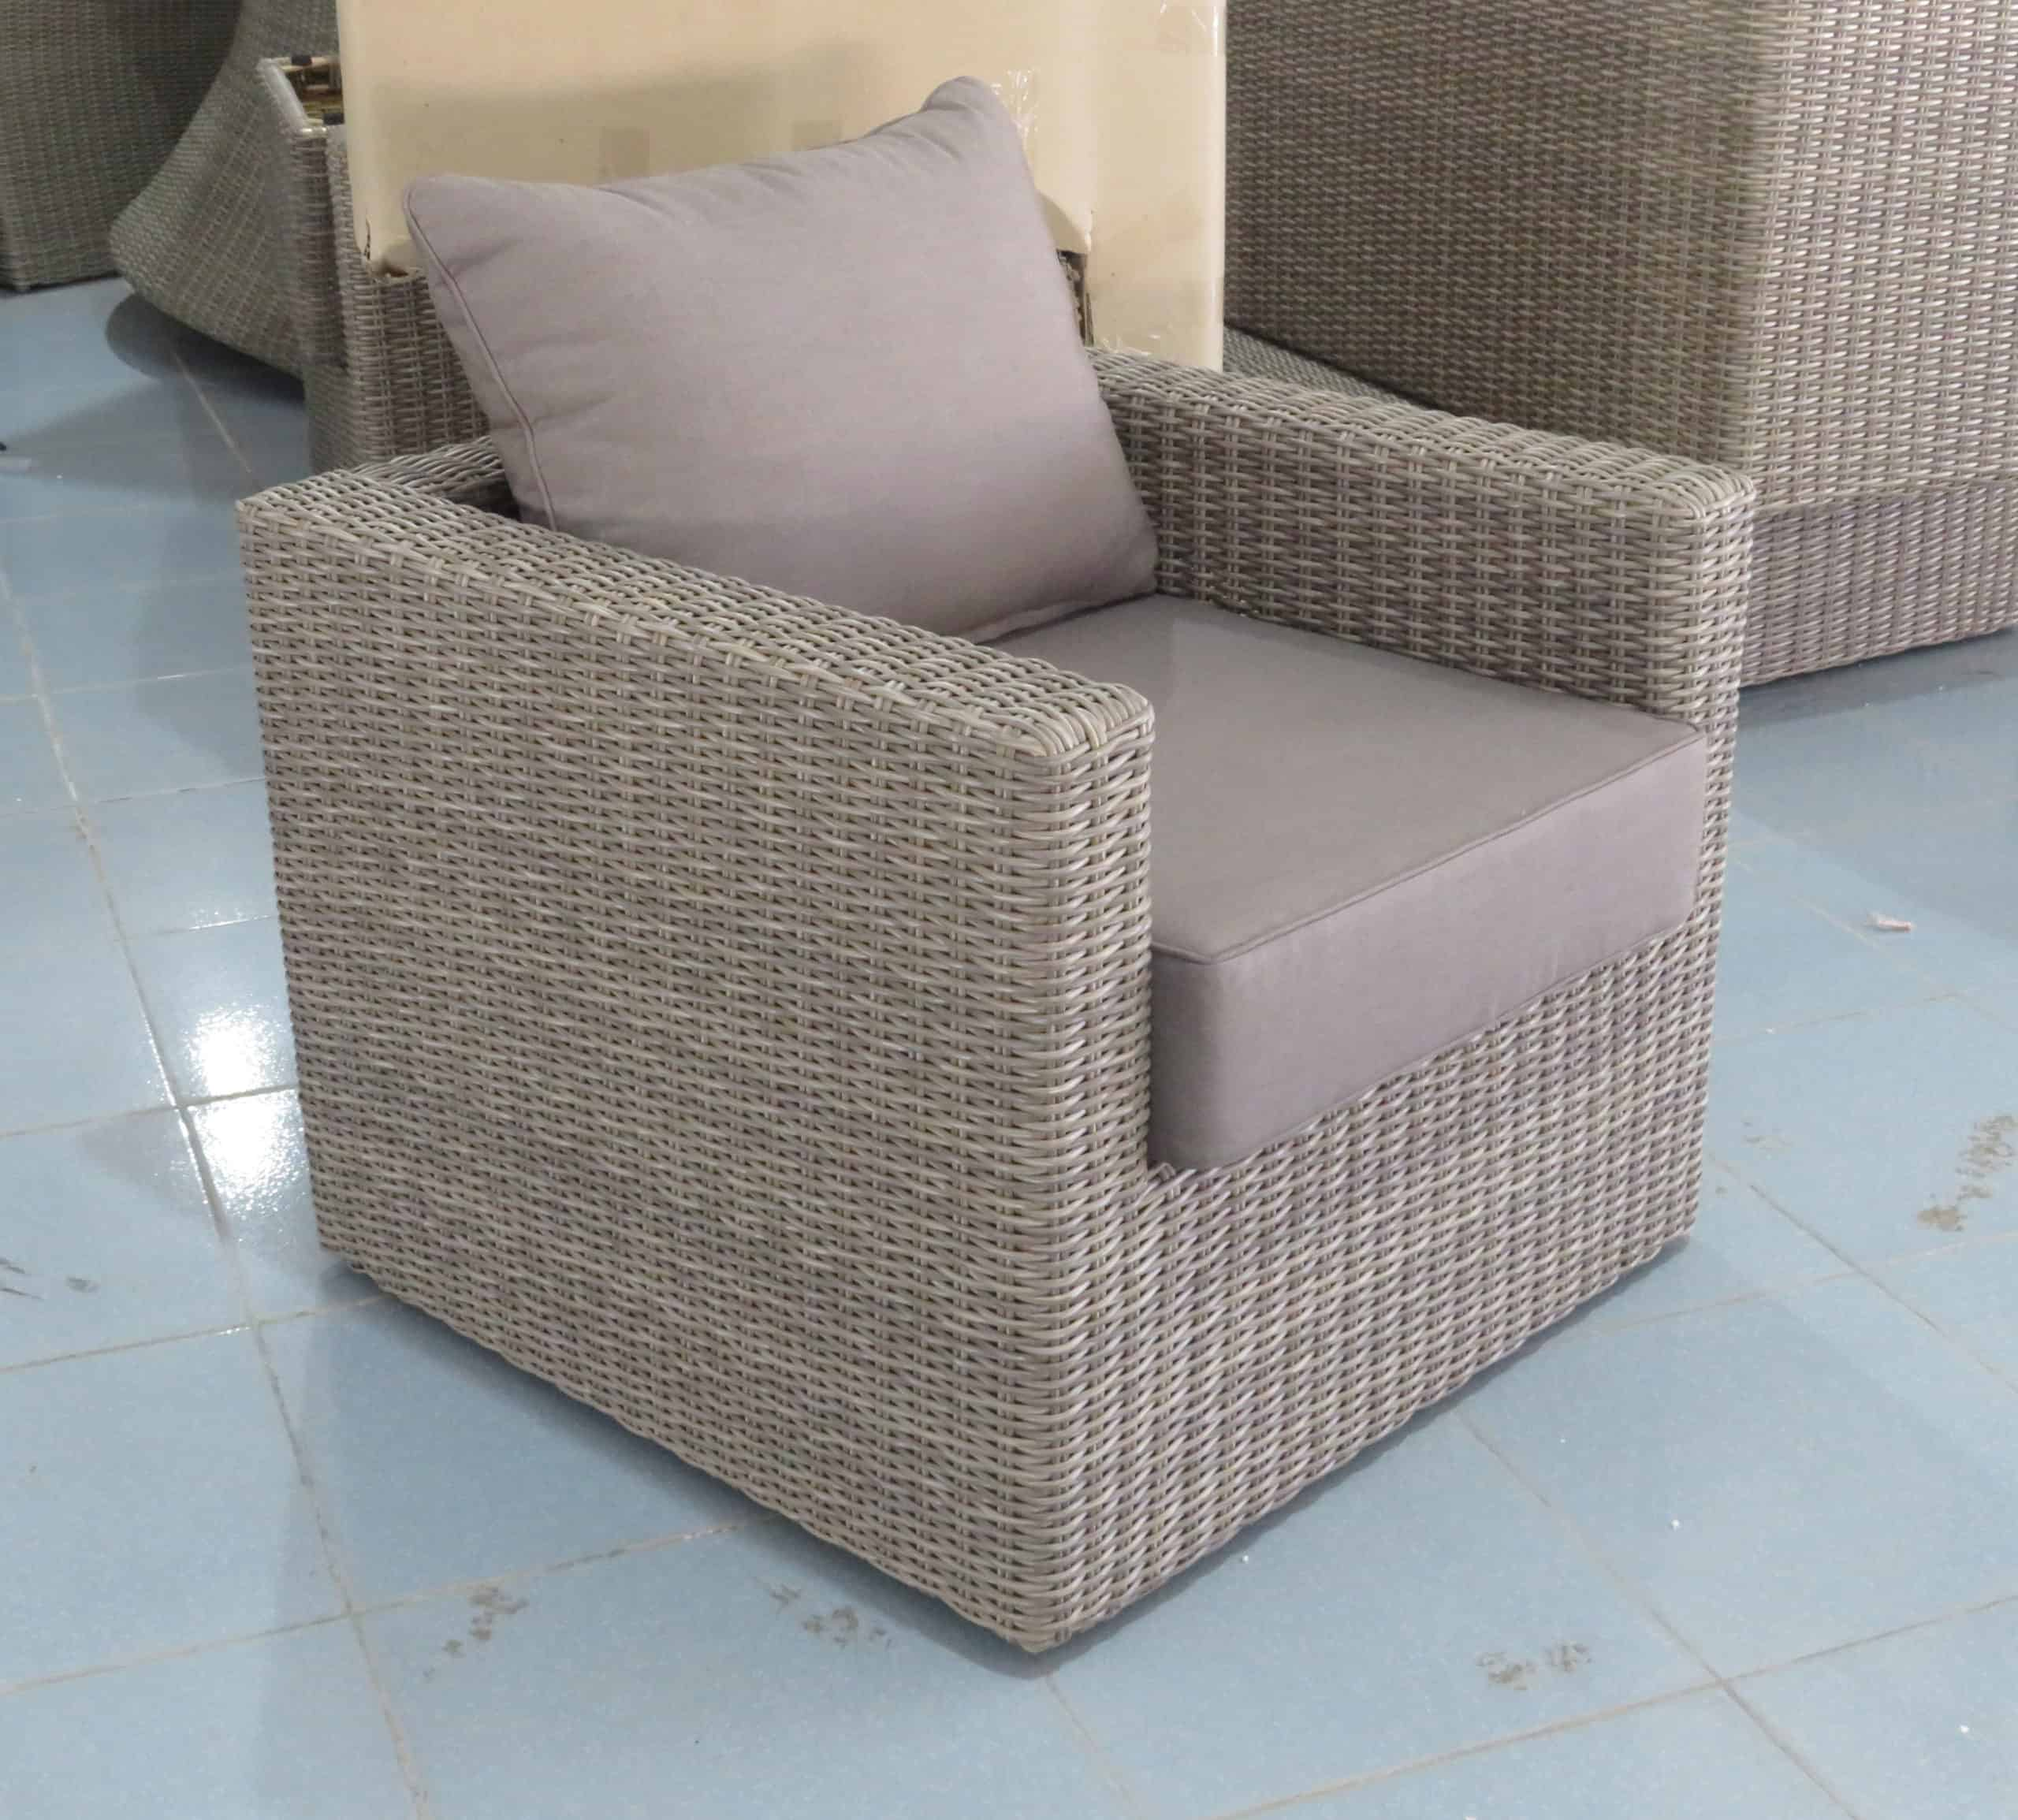 Patros Lounge Chair - Garden Furniture For Sale Dublin Ireland